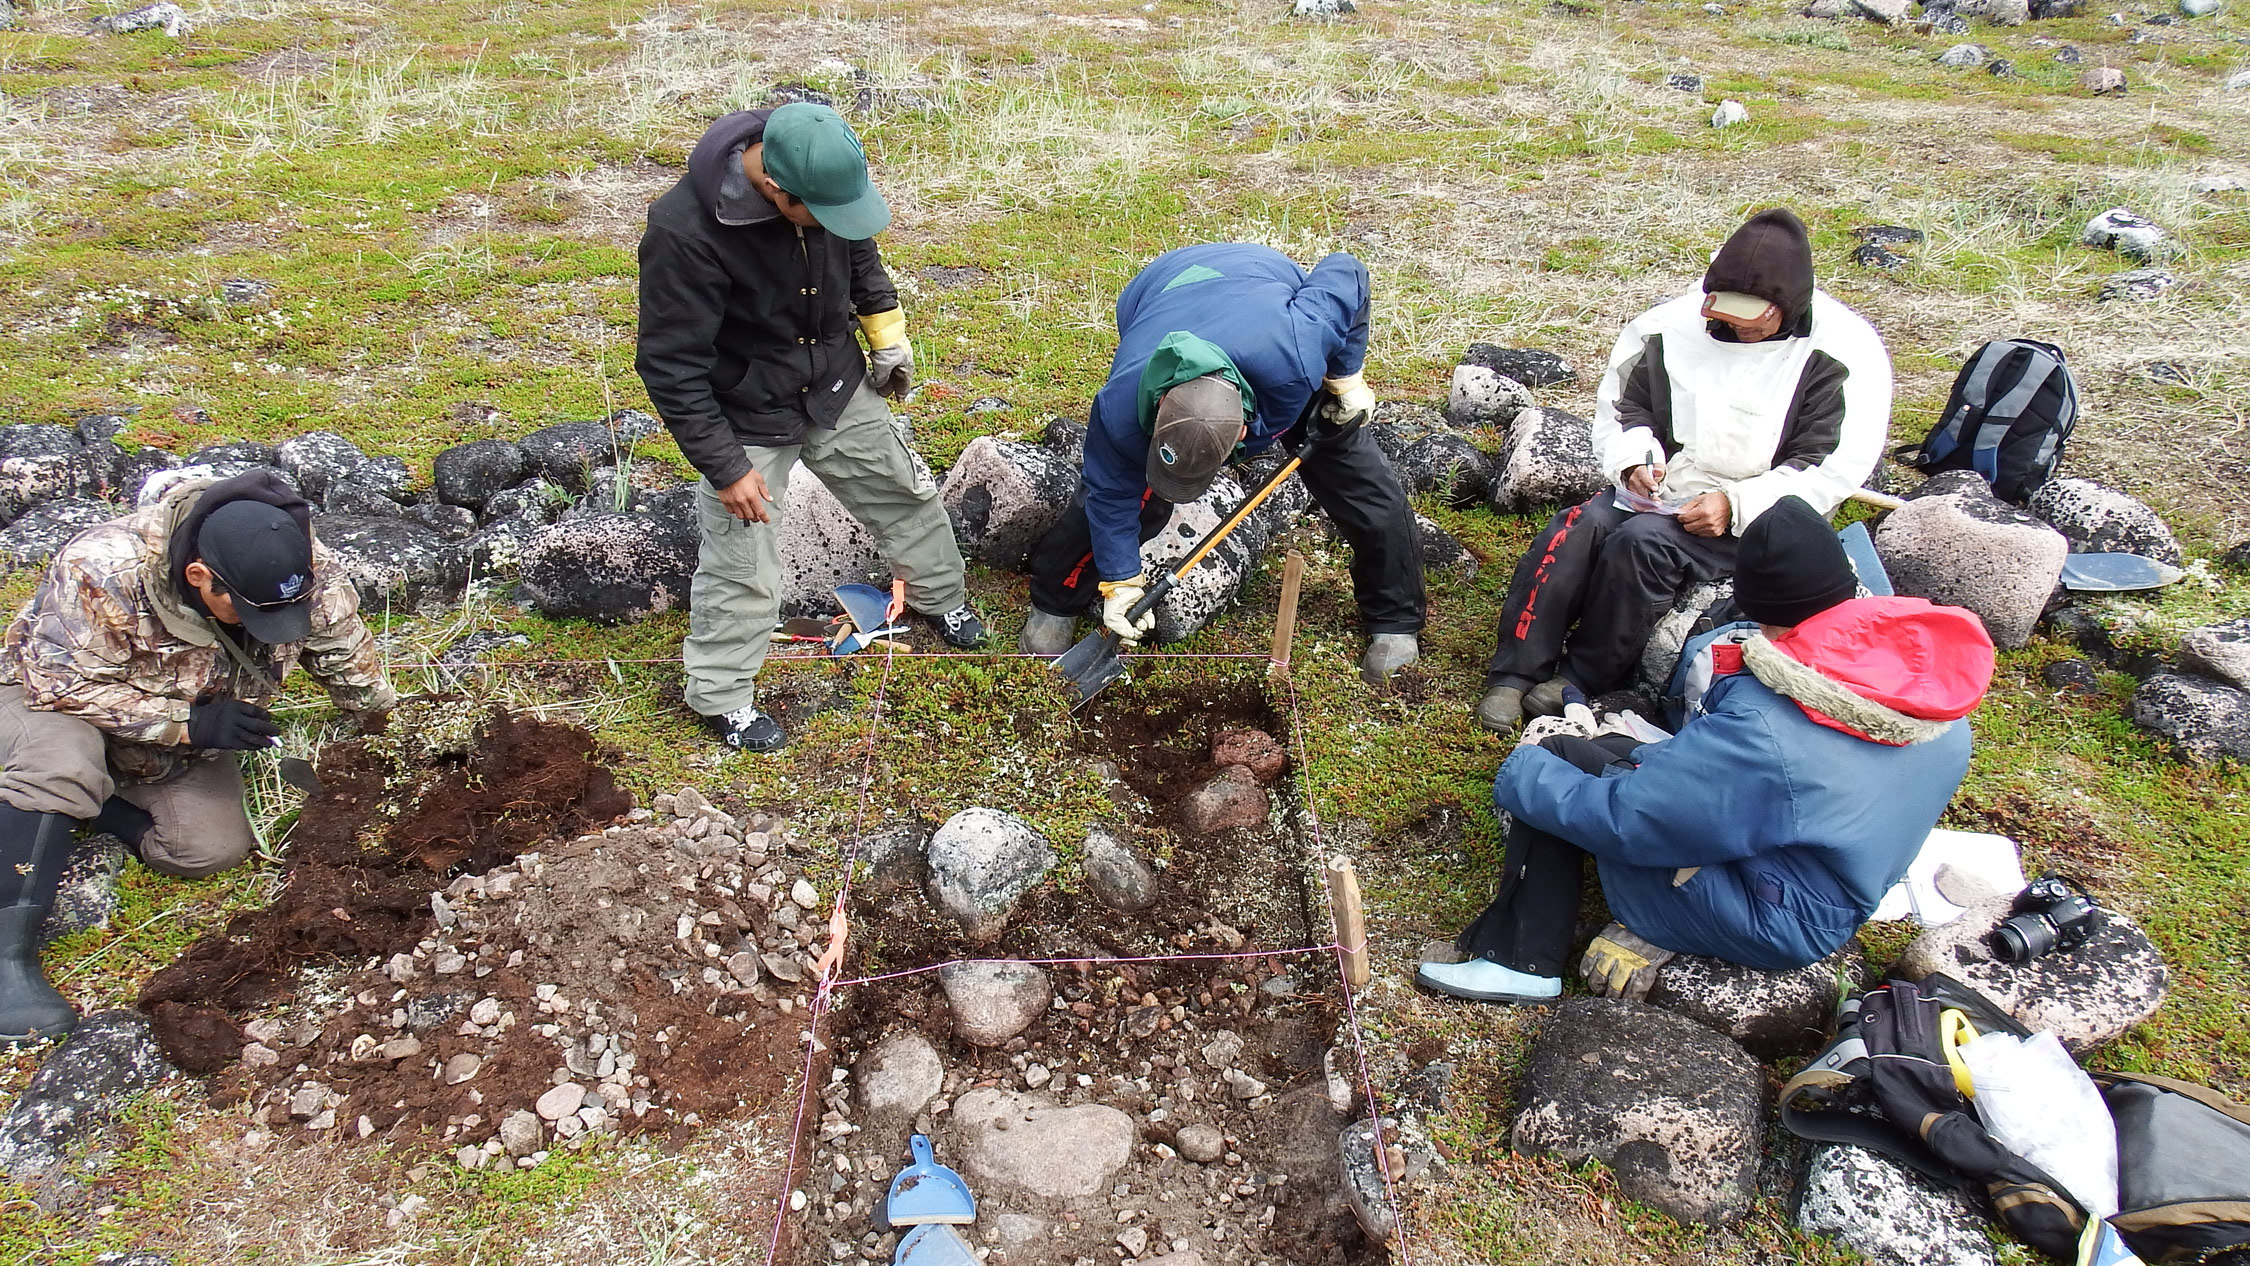 Excavating a multifamily longhouse, from left: Johnny Mamgark, David Tassiuk, Peter Alareak, Luke Suluk, and Virginia Petch.